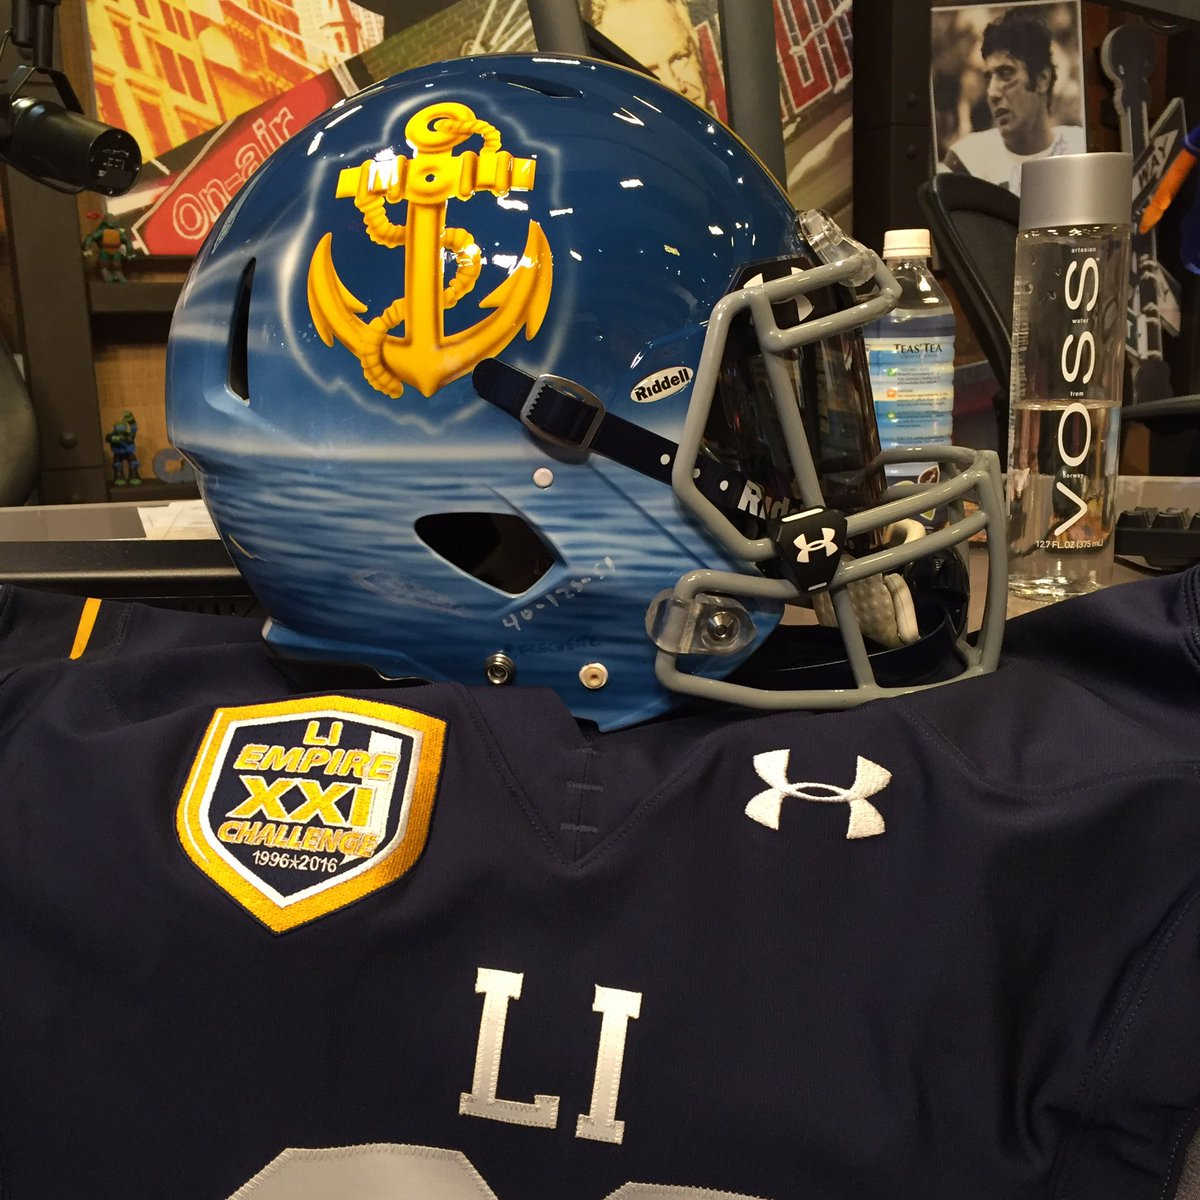 Here are the helmets for @EmpireChallenge High School All Star Game. Long Island v NYC June 21 at Hofstra https://t.co/2yoWO37bxs